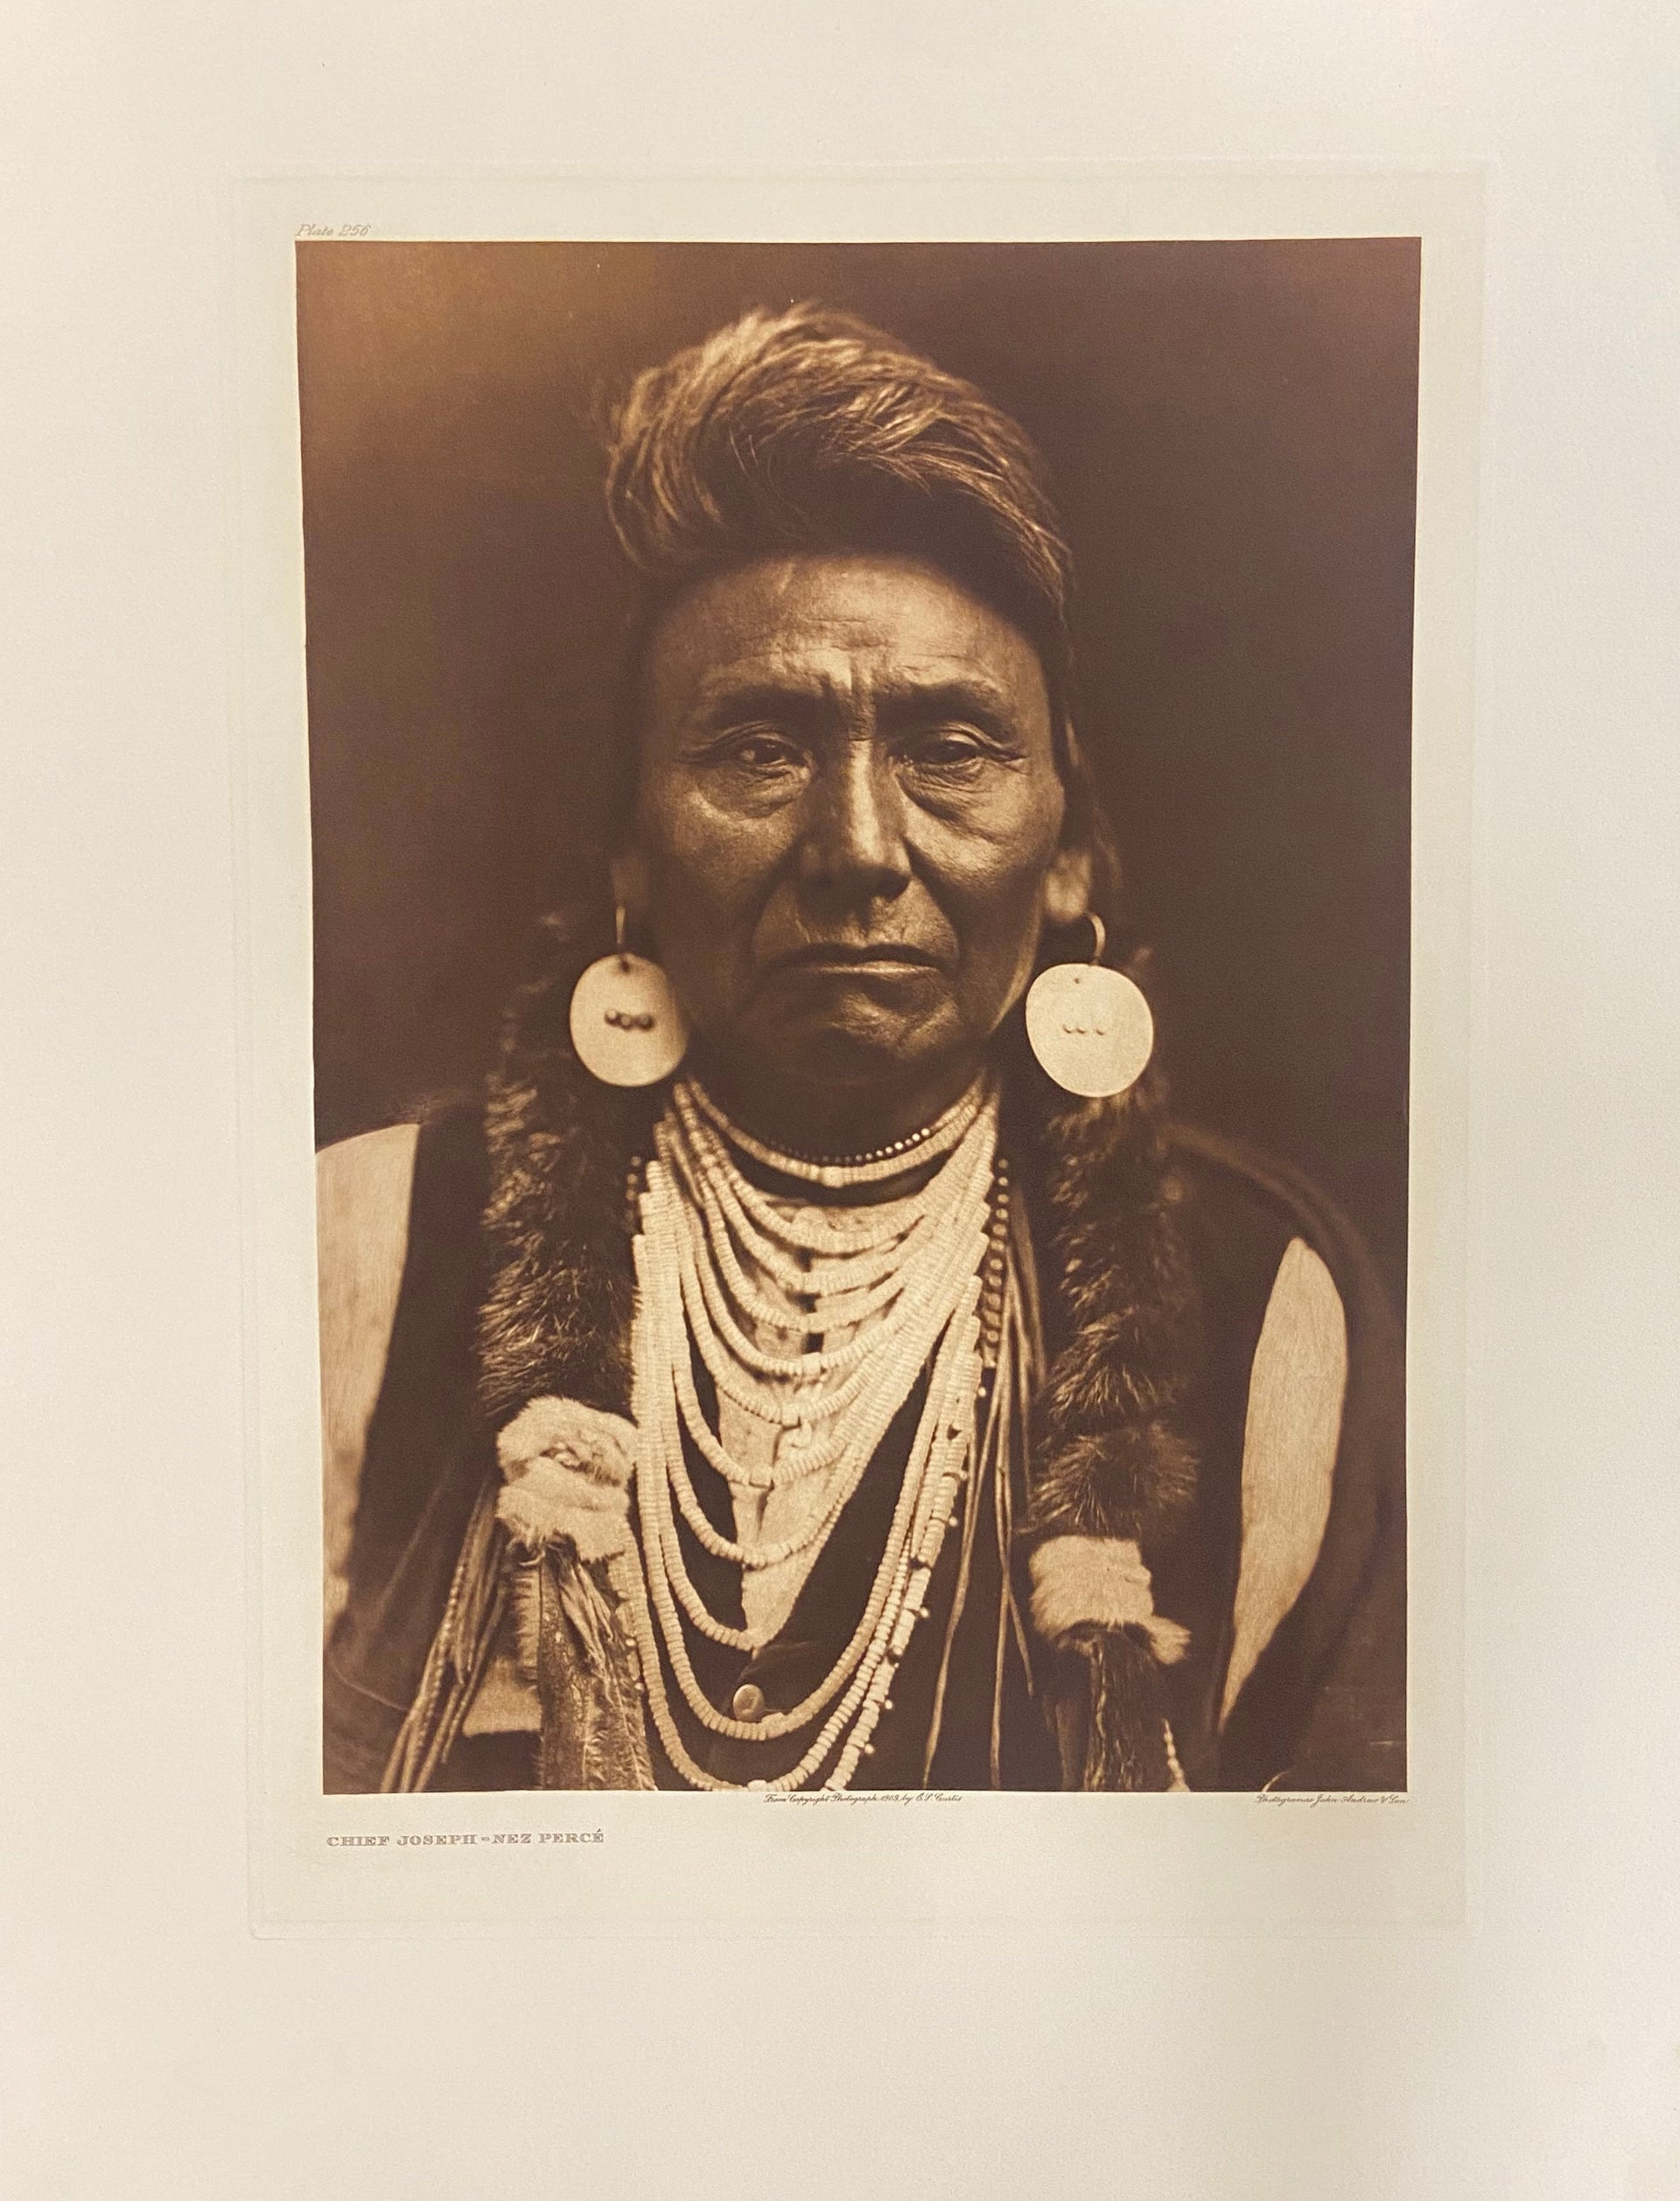 Chief Joseph - Nez Percé